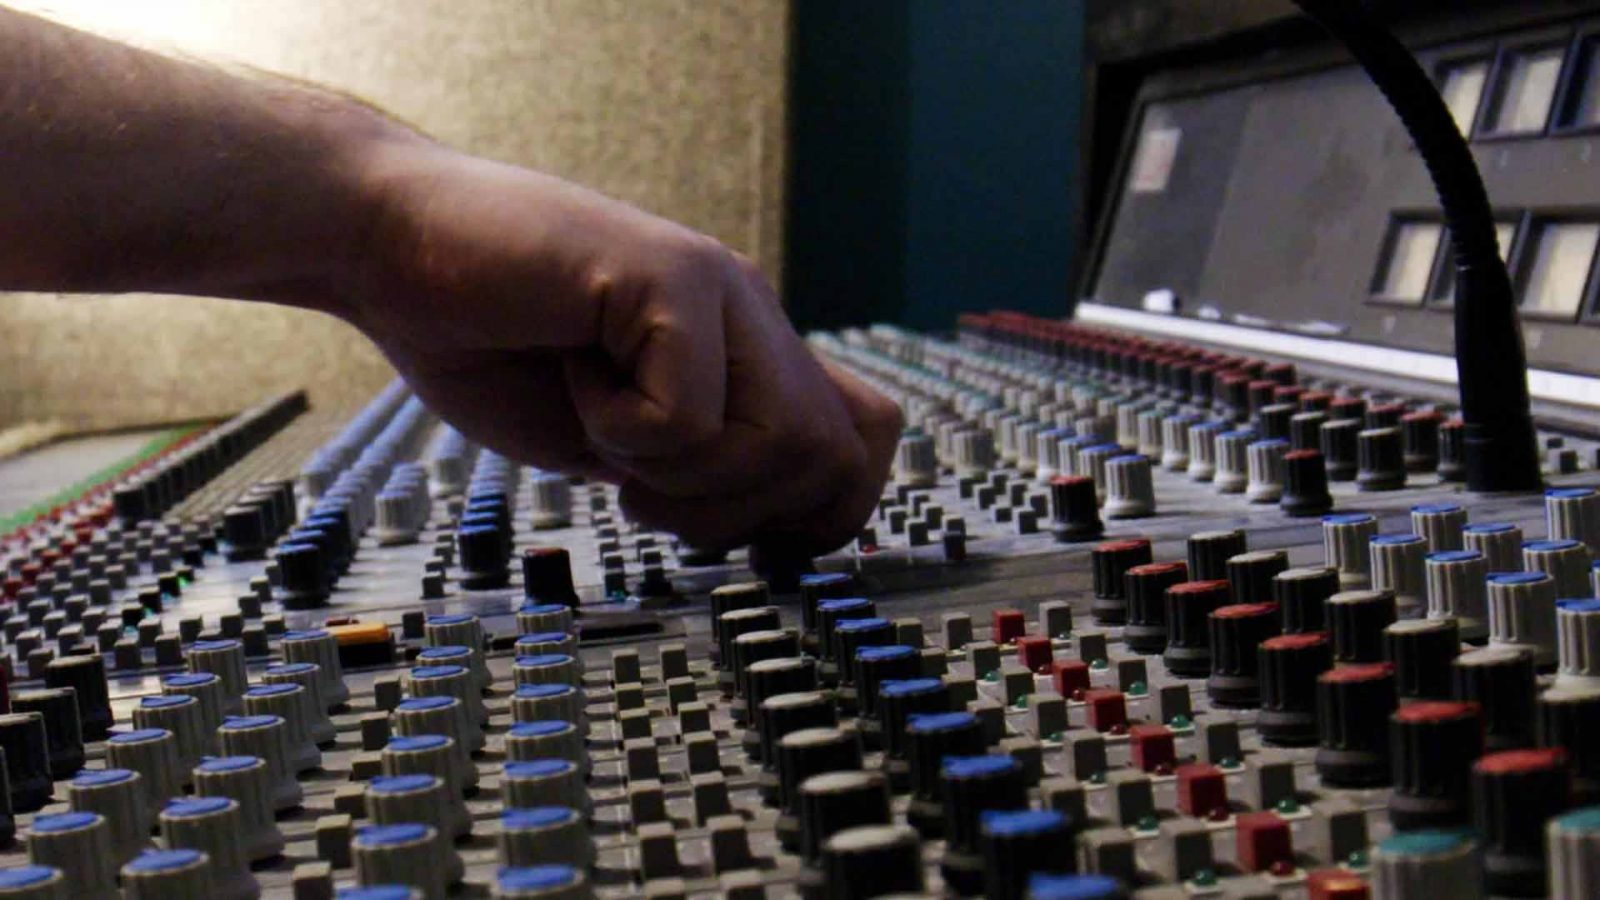 hand with dda 48 channel analogue mixing console